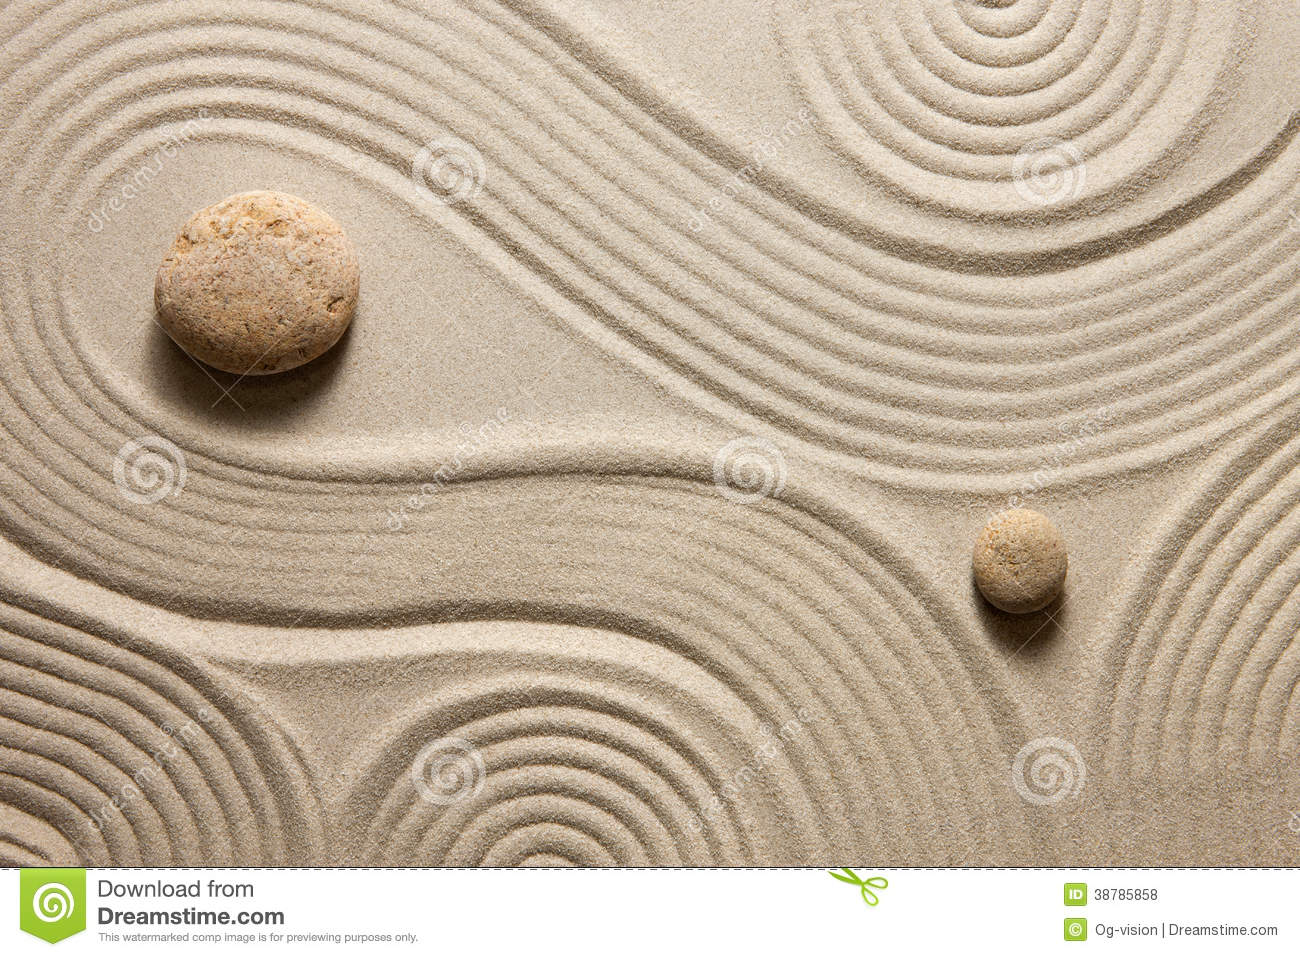 Japanese zen gardens top view - Garden Raked Sand Top View Zen